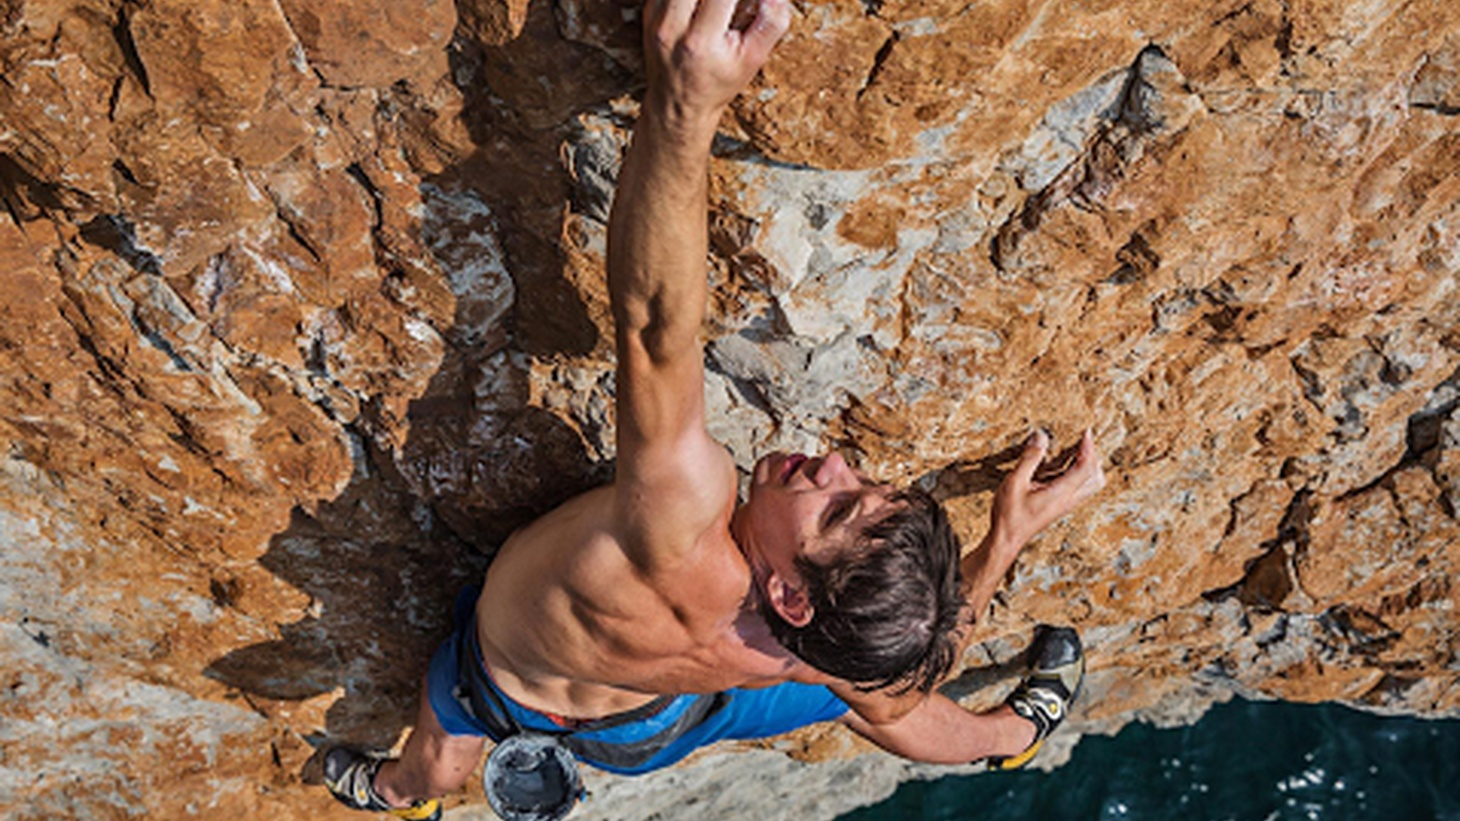 Protesters are demanding that Calfornia eliminate the 10-year statute of limitations on sexual assault cases. But why is there a statute of limitations in the first place? And seven years ago, Alex Honnold free-climbed the northwest face of Yosemite's Half Dome.